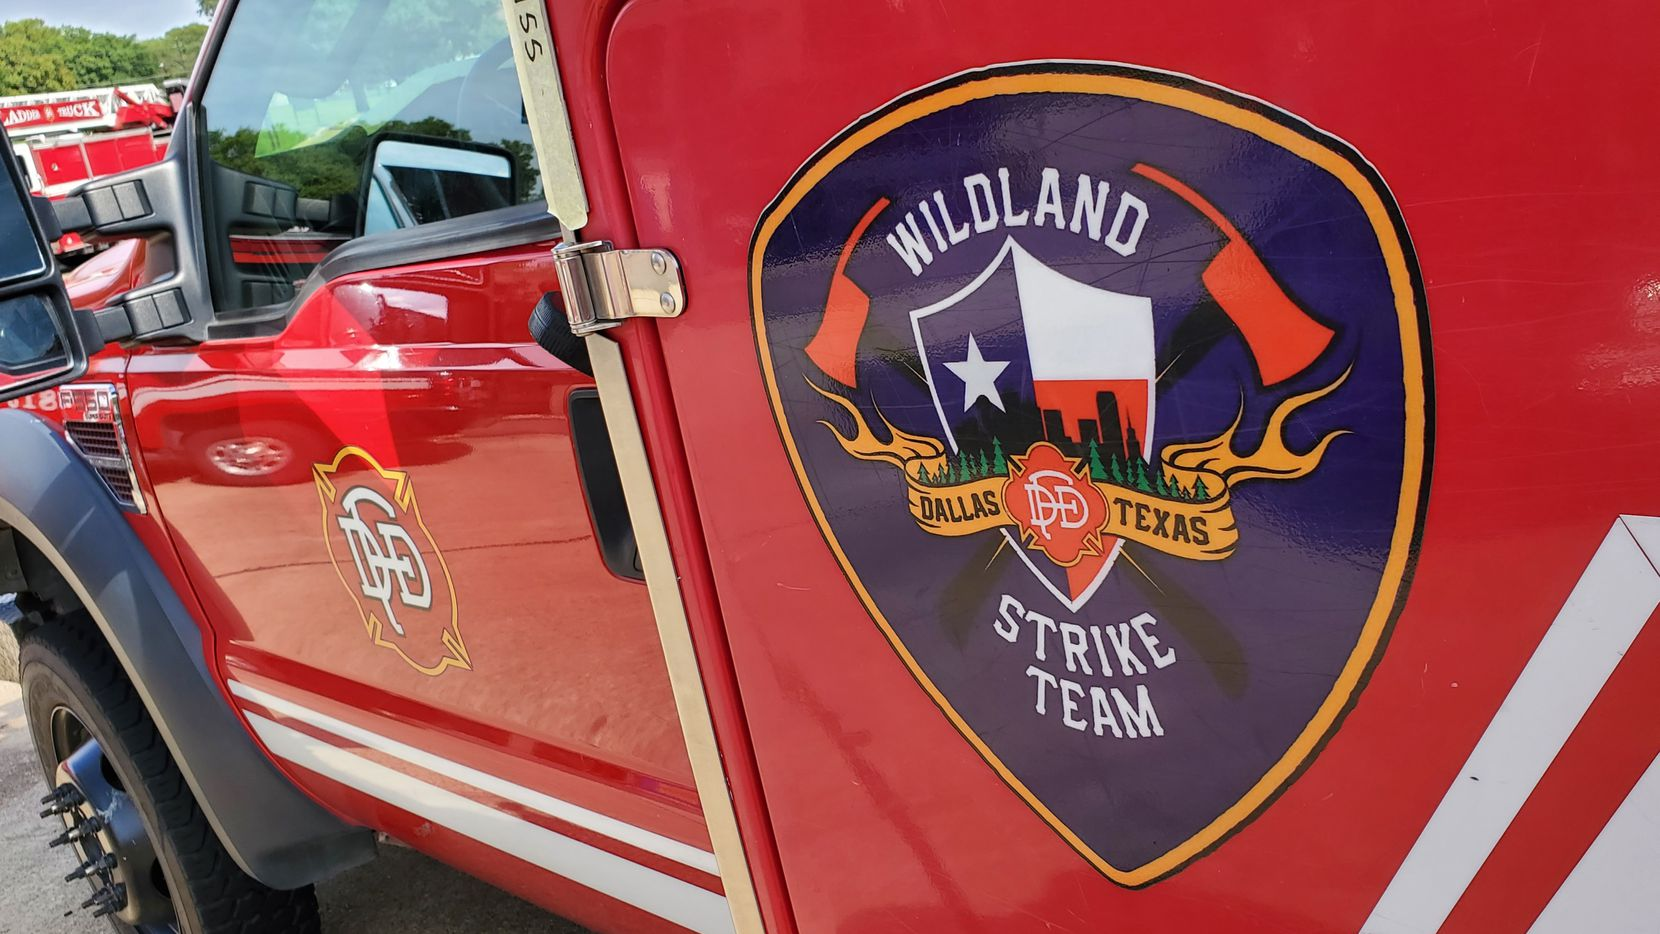 Thirteen firefighters from Dallas Fire-Rescue's wildland strike team headed to California on Friday.